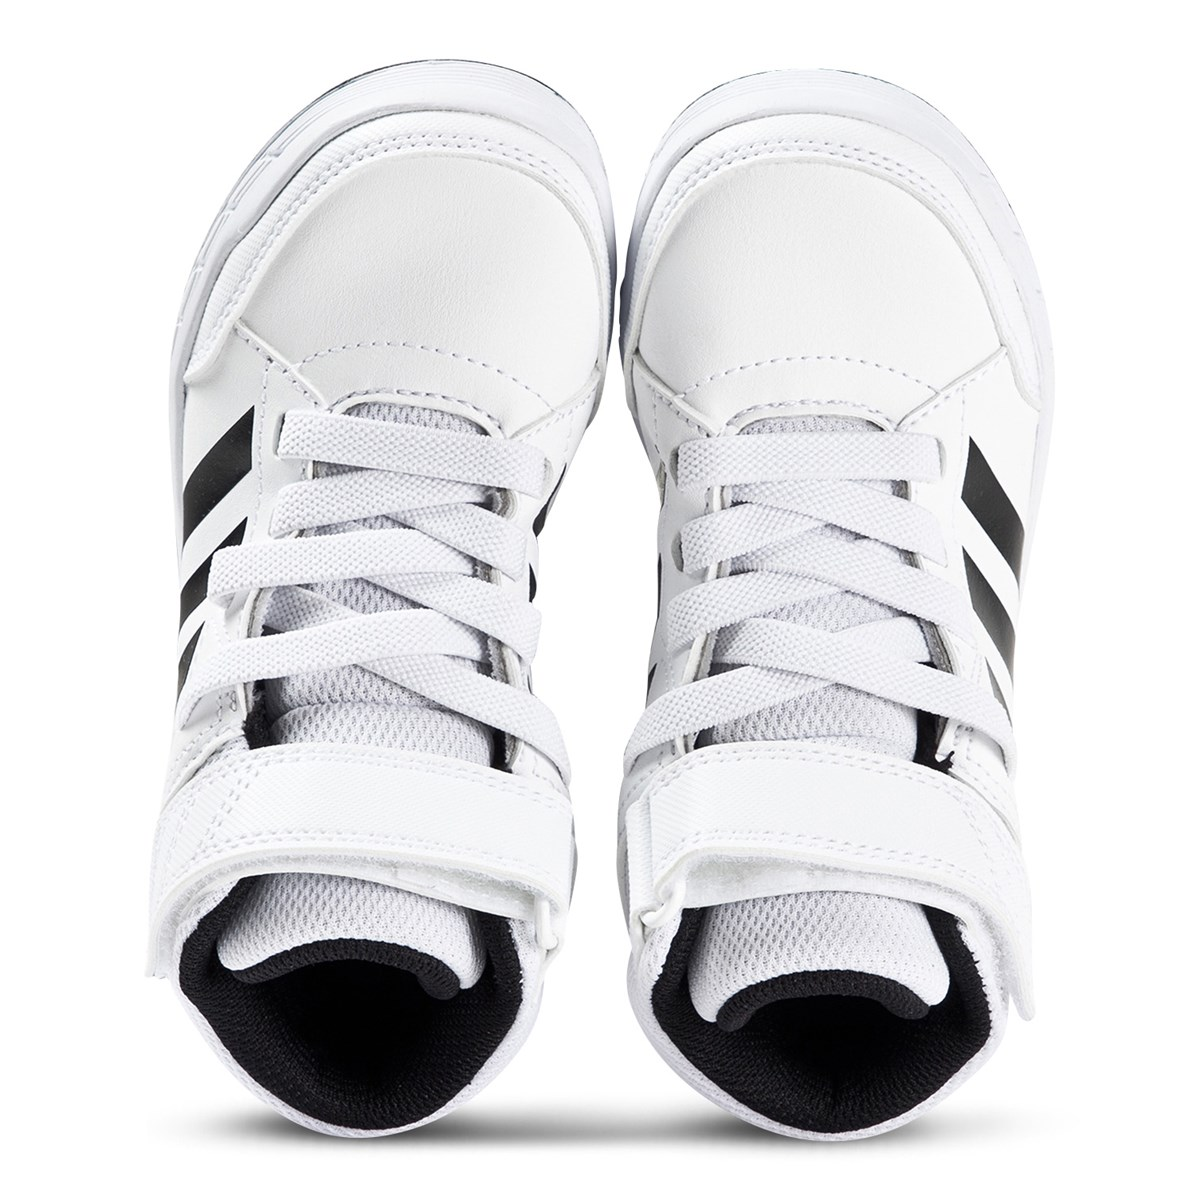 adidas Performance White & Black AltaSport Mid Running Trainers | AlexandAlexa